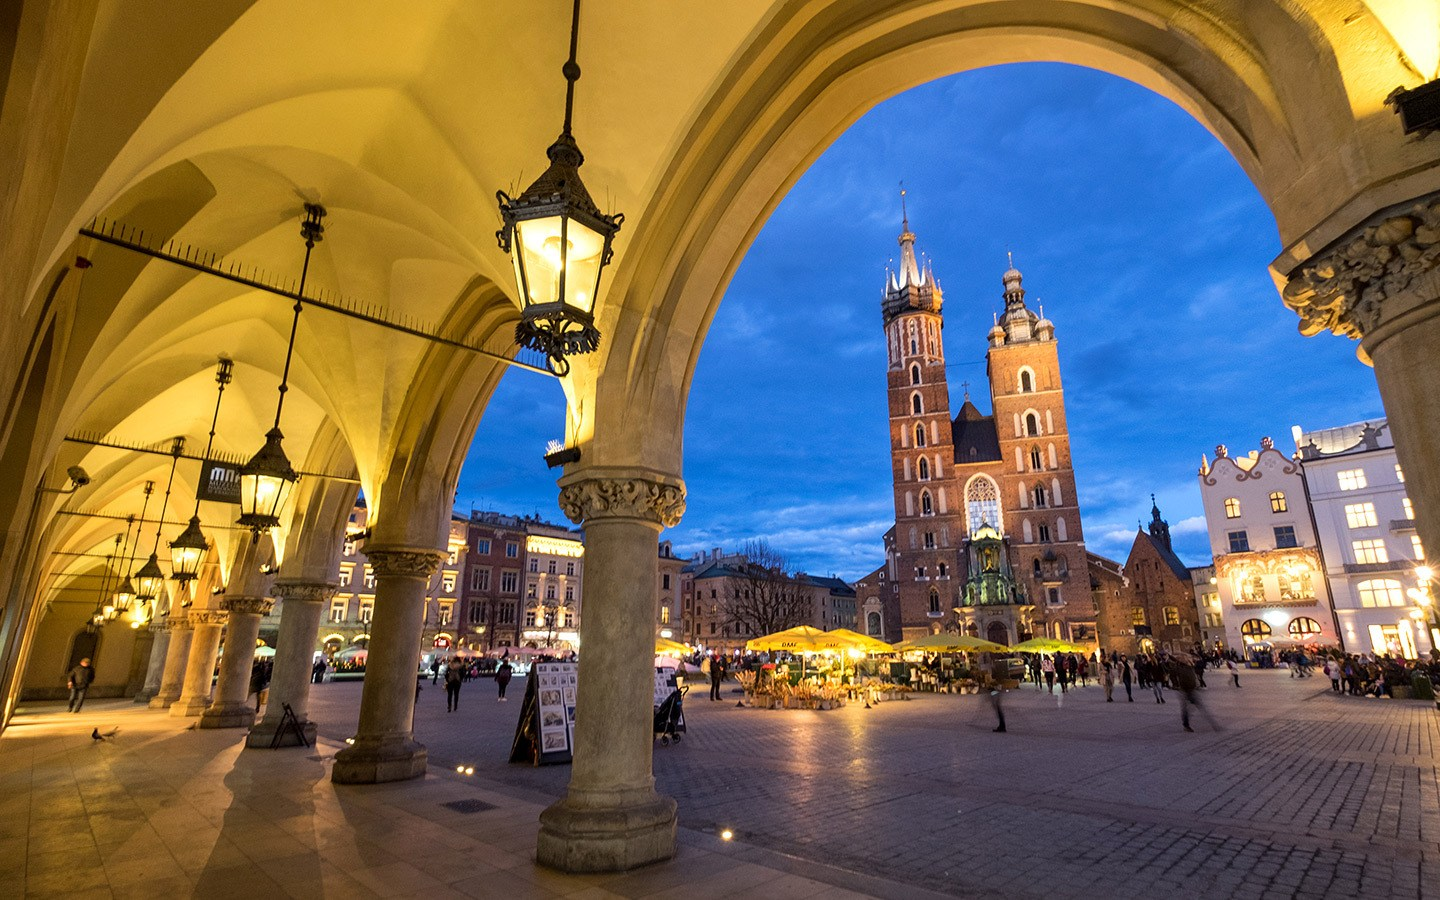 Five reasons why Kraków in Poland makes a great European weekend city break destination – with beautiful architecture, a fascinating history, friendly people, delicious food and great value for money.